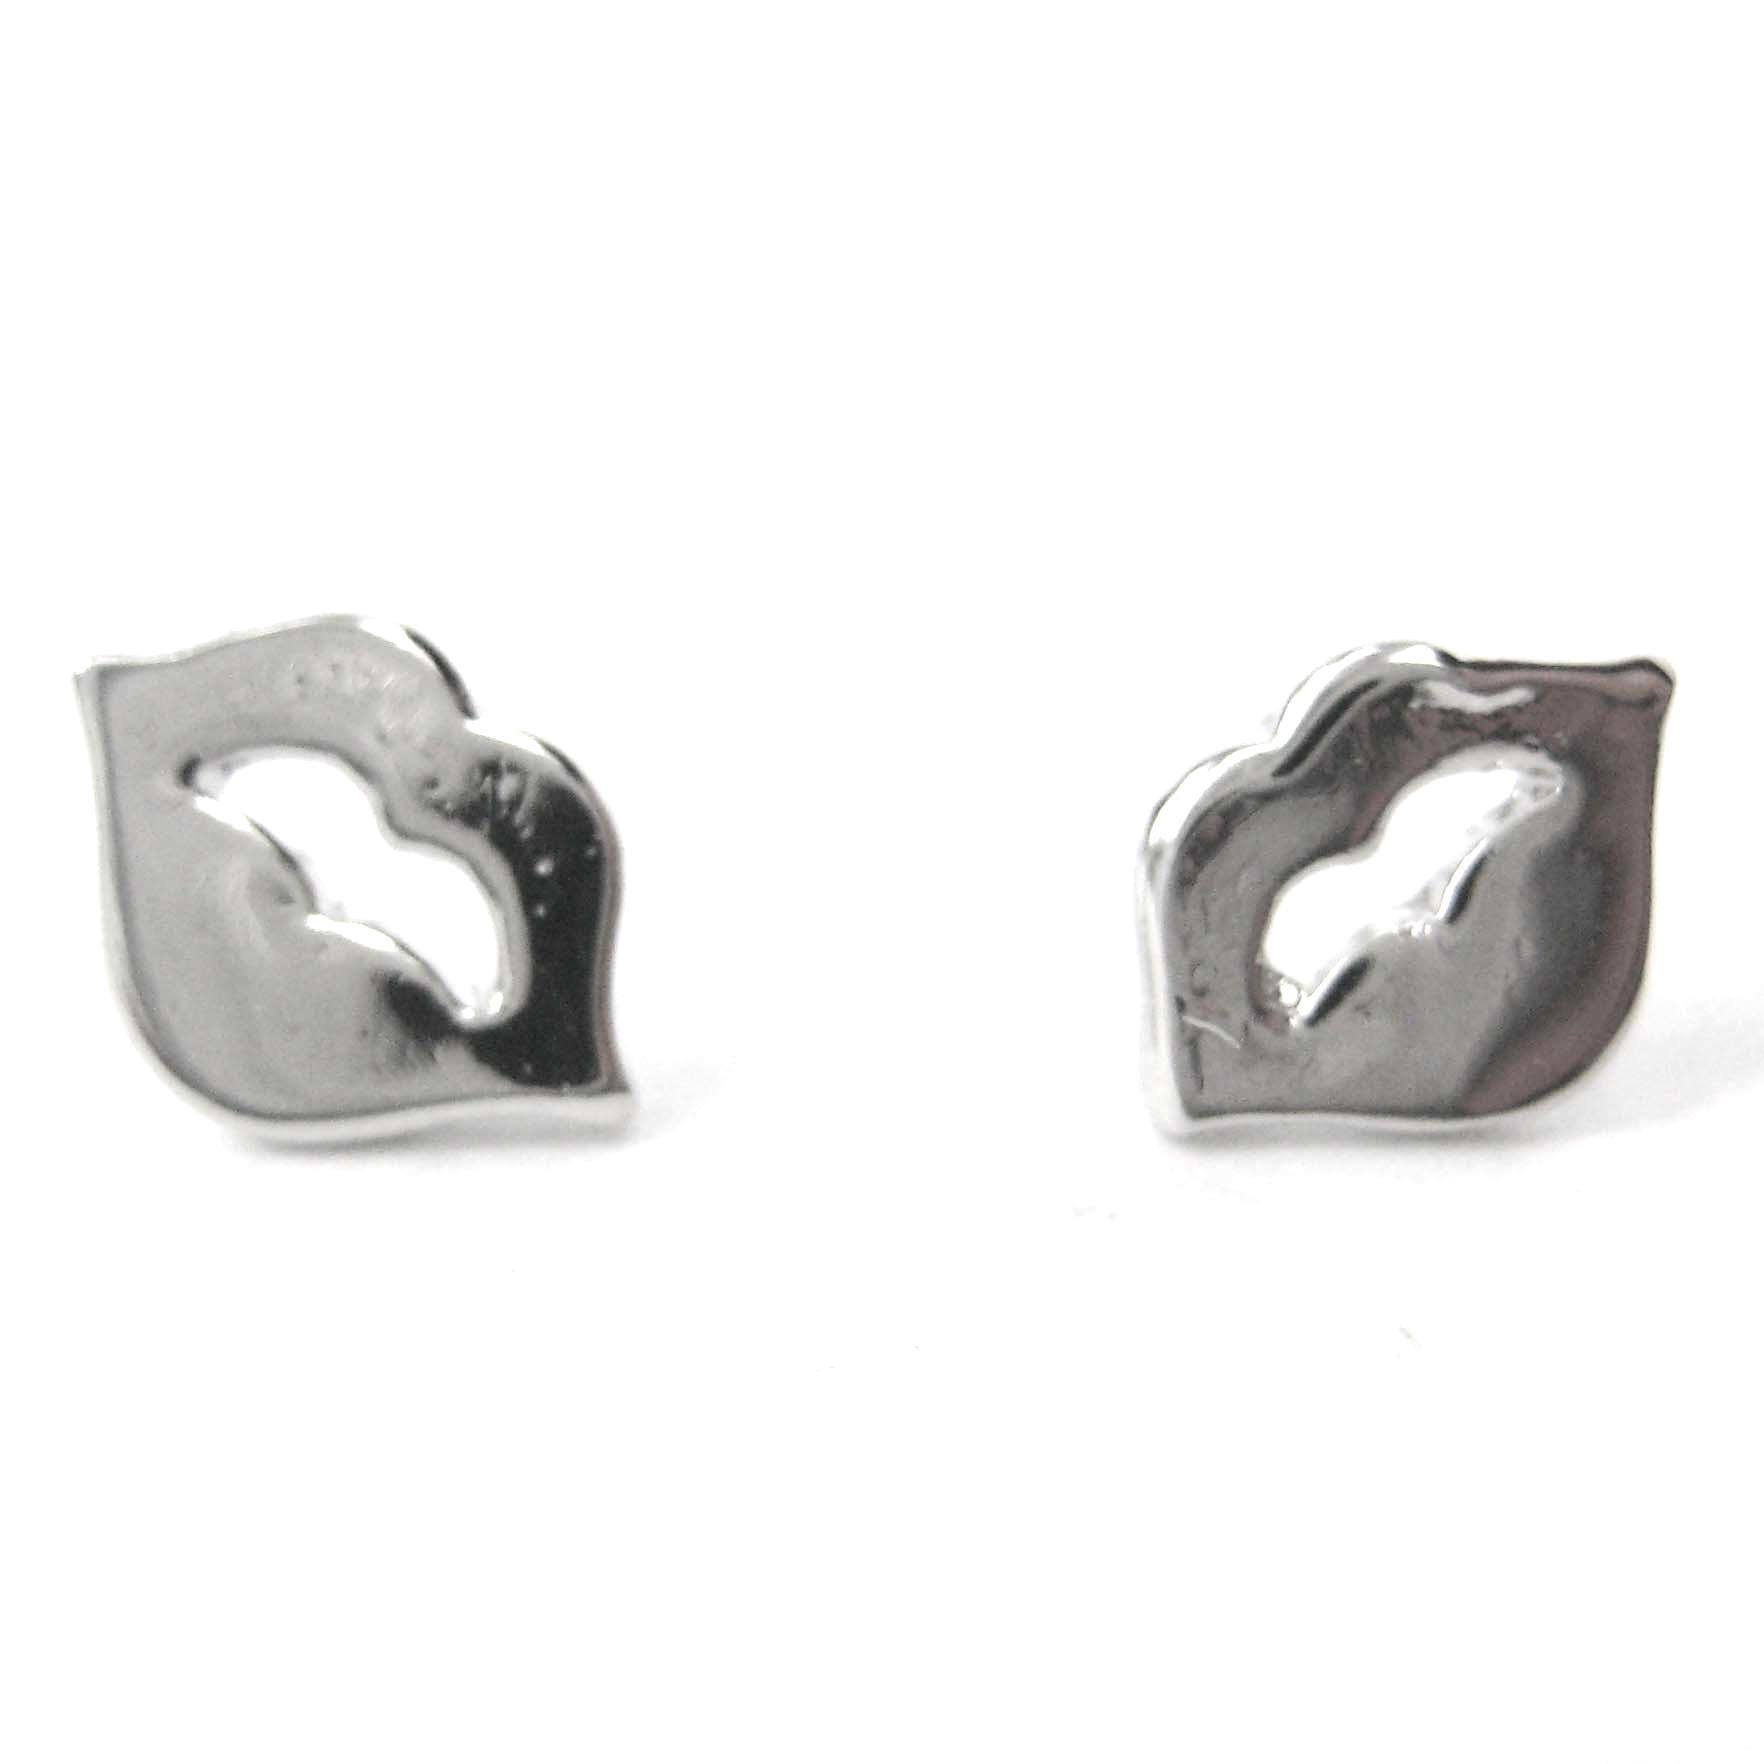 small-lips-and-tongue-stud-earrings-in-silver